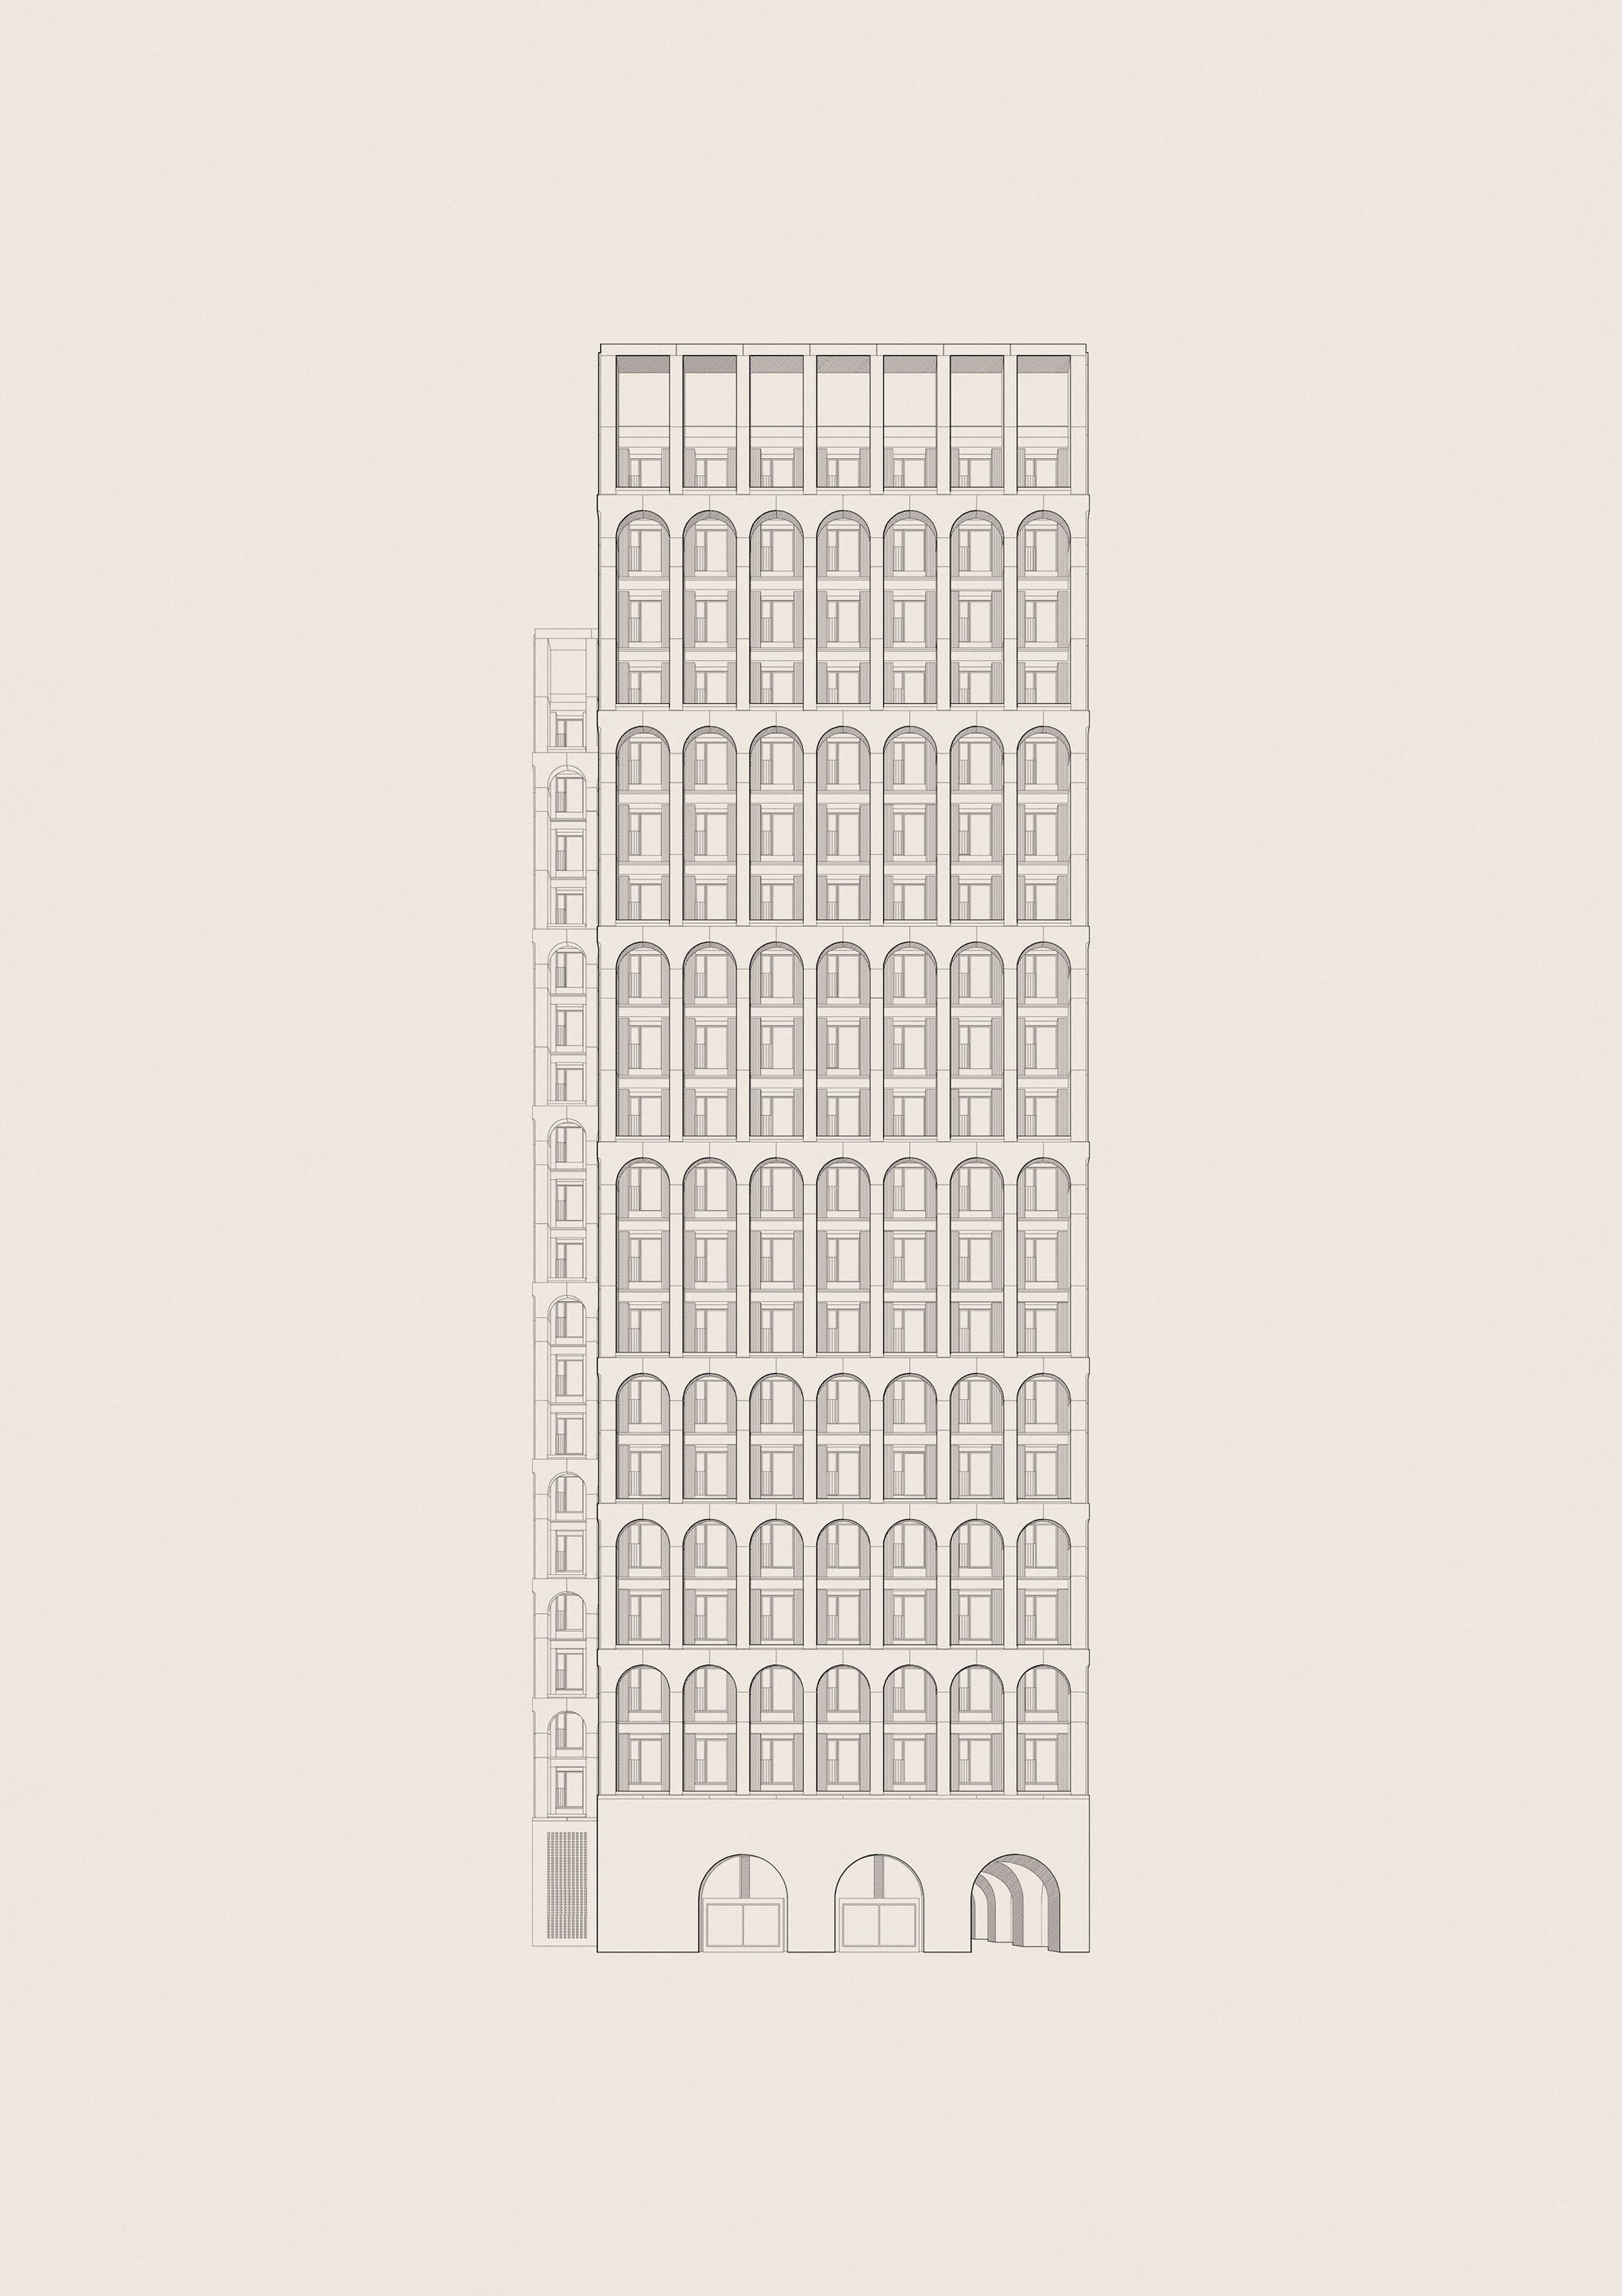 Henley-Halebrown-Architects_High-Rise,-London_2017_A3-compressed.jpg